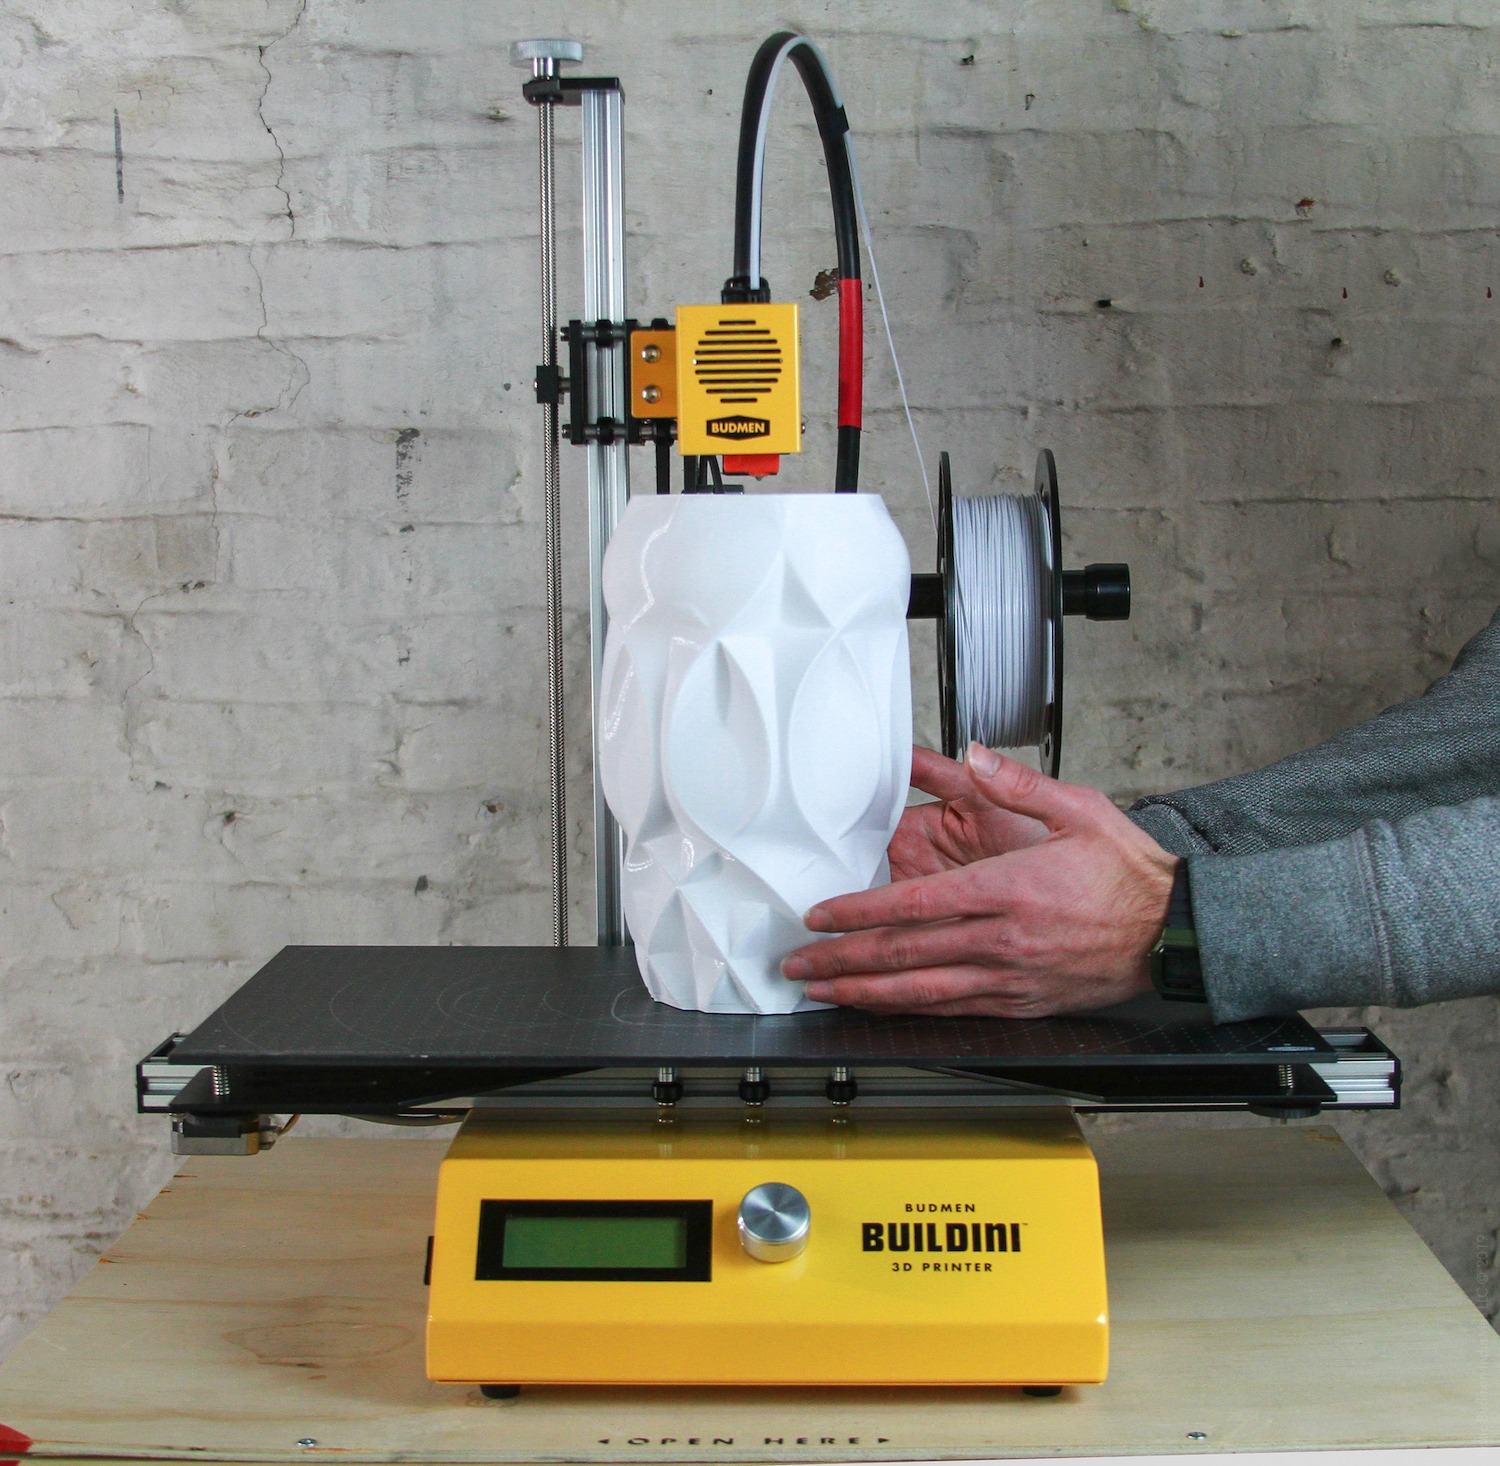 A lamp being removed from the Buildini 3D Printer